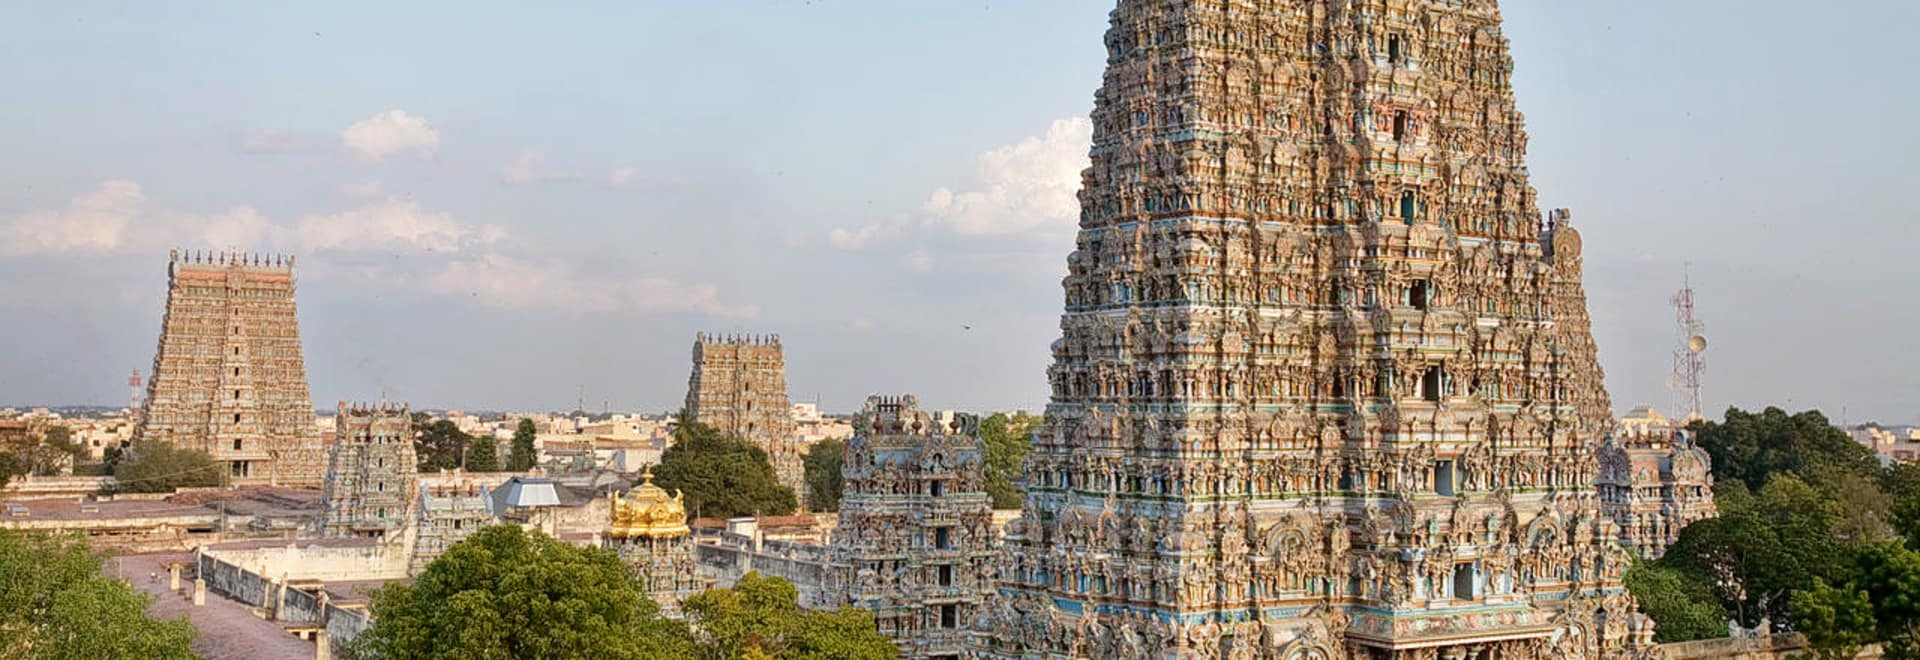 1493365536_1280px-india_-_madurai_temple_-_0781.jpg